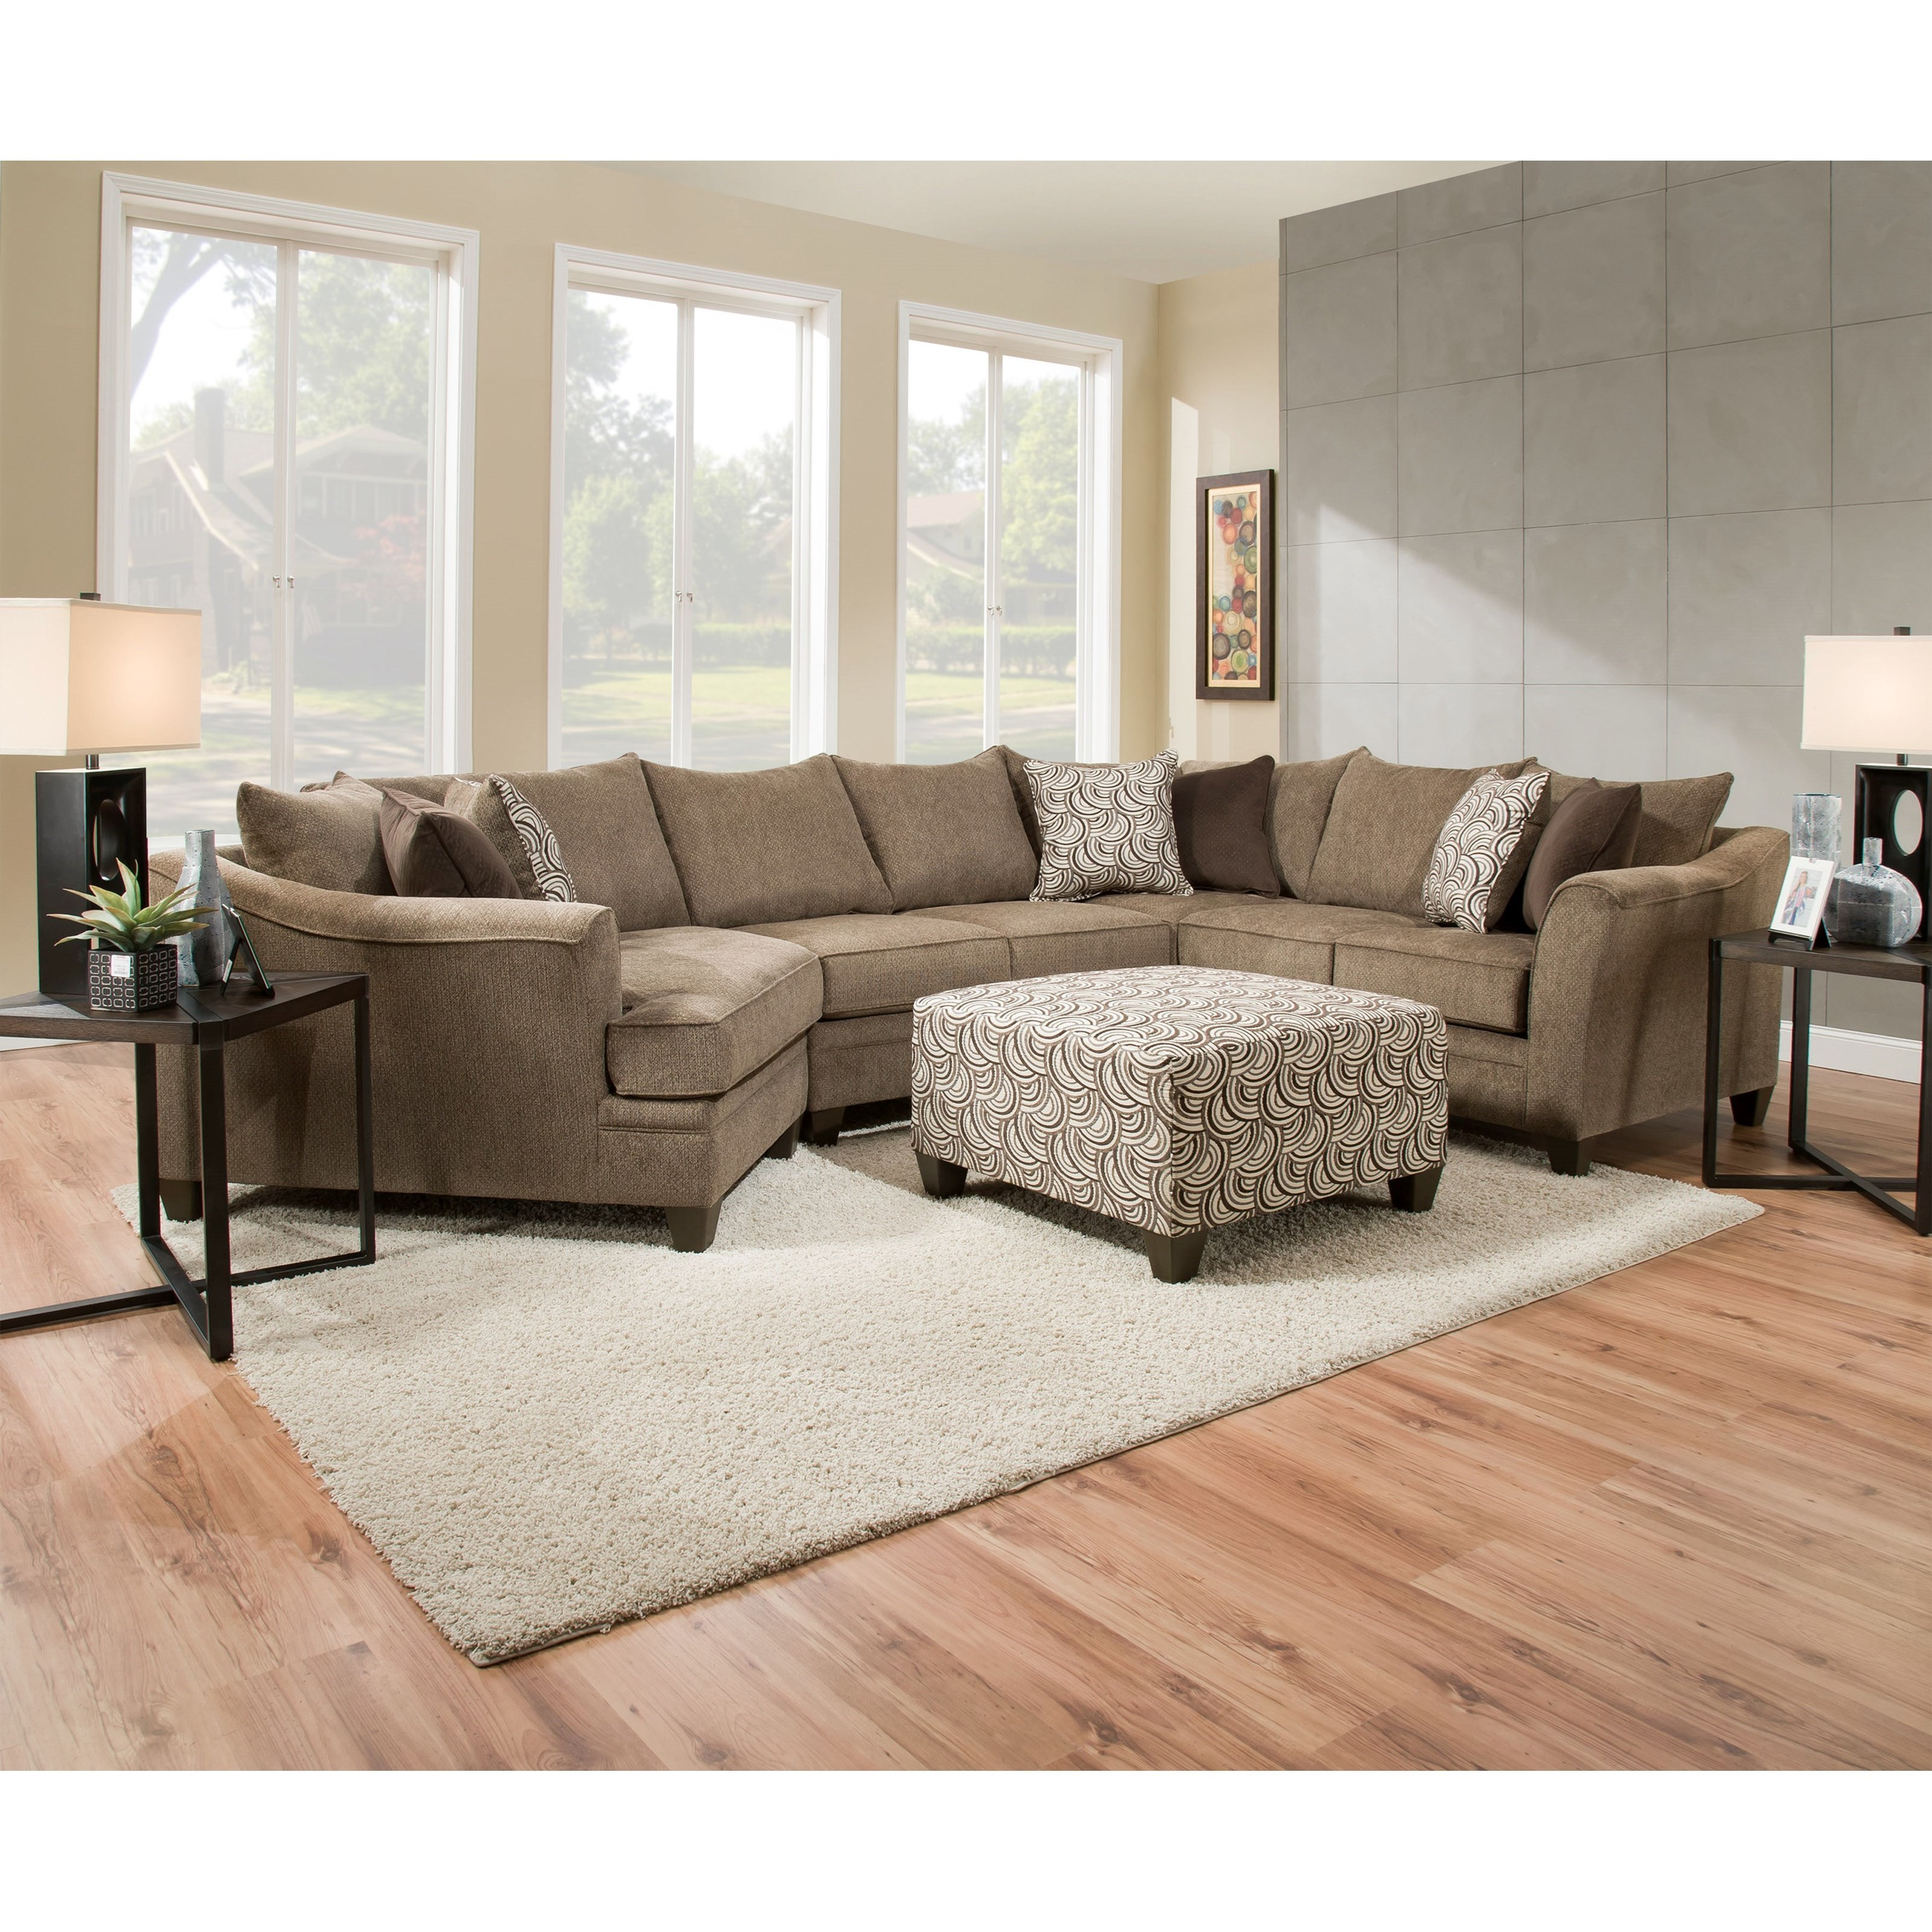 ... Transitional Sectional Sofa. Ottoman Not Included